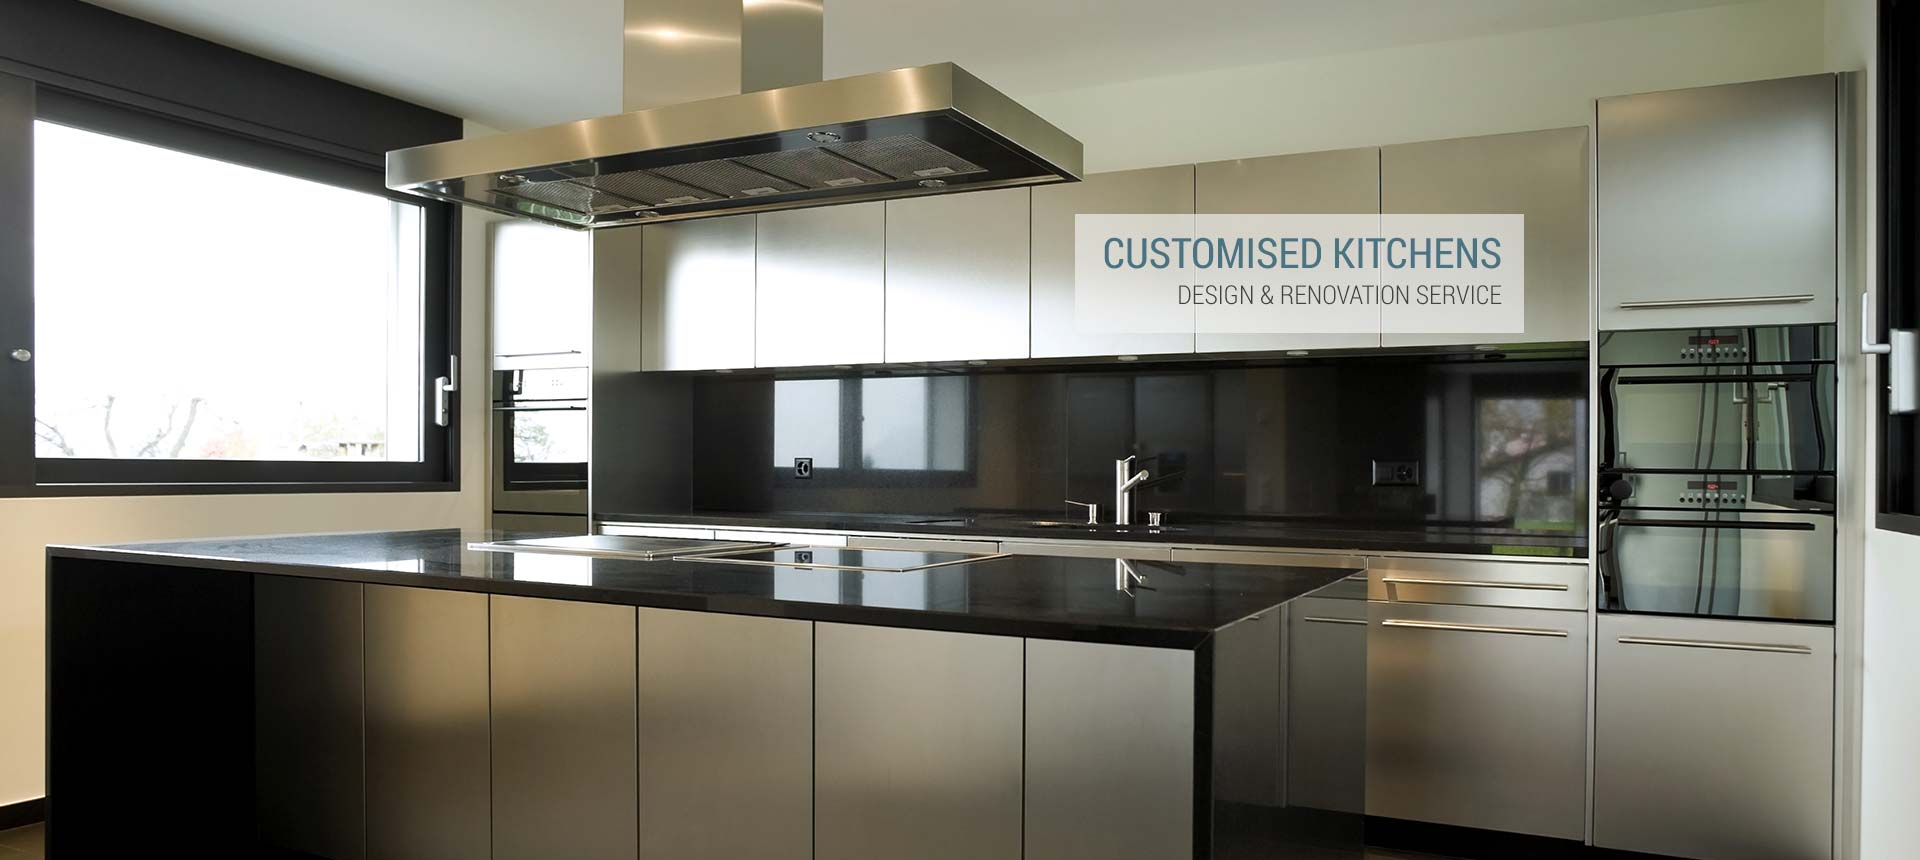 Sliderobes - Customised Kitchens